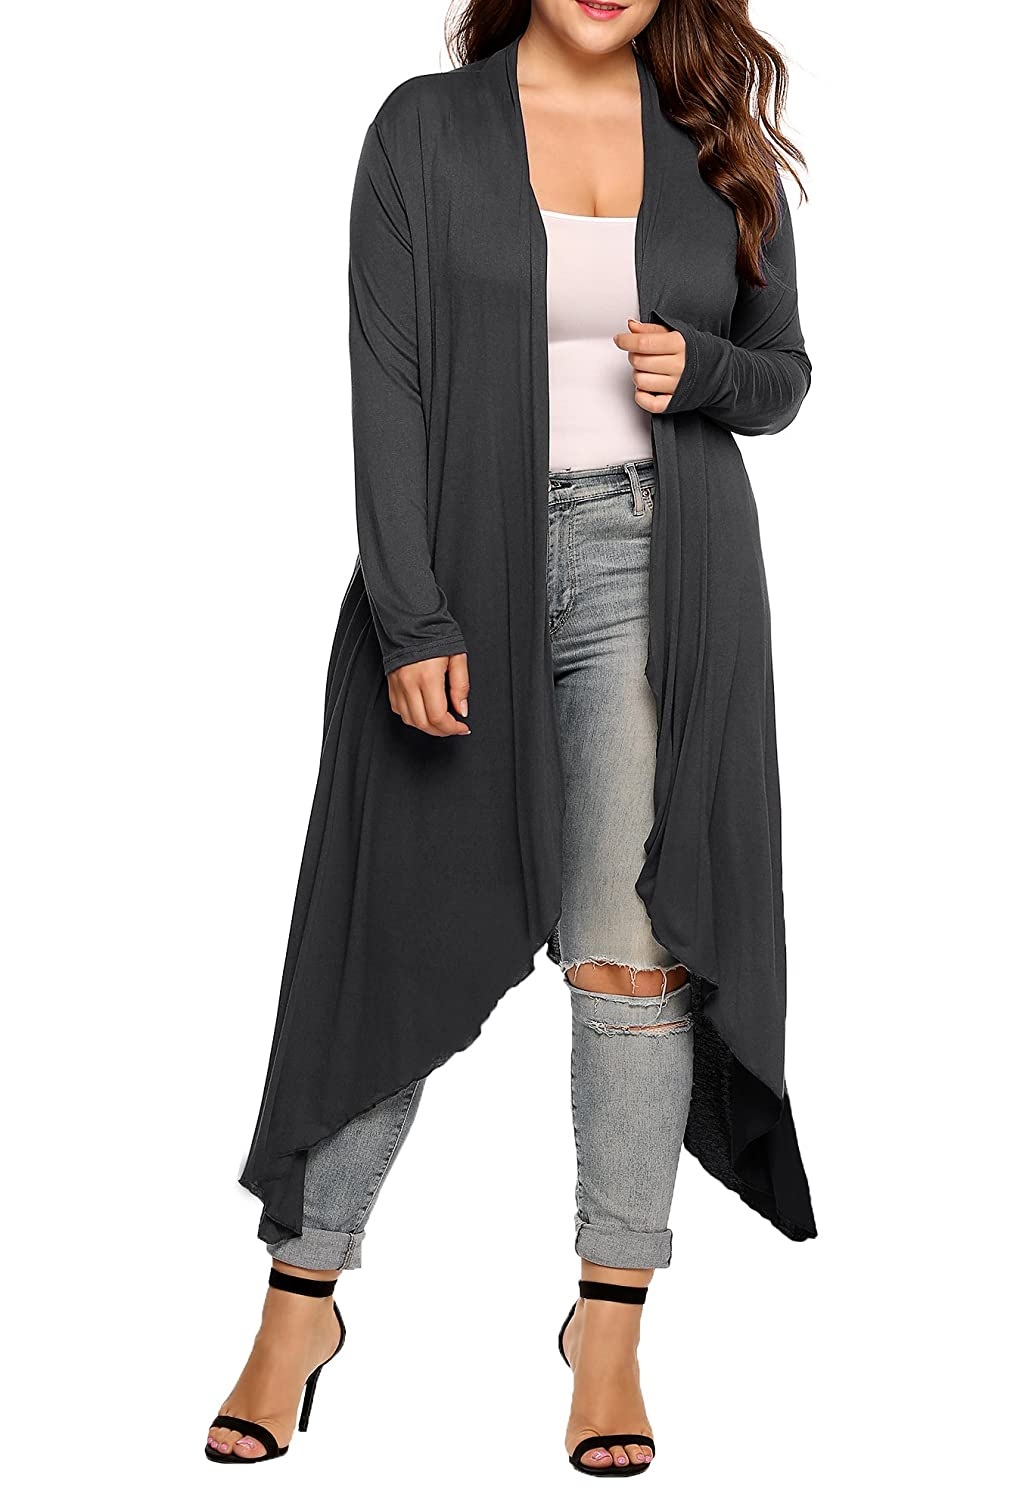 IN'VOLAND Women's Plus Size Long Sleeve Waterfall Asymmetric Drape Open Long Maxi Cardigan INH015596